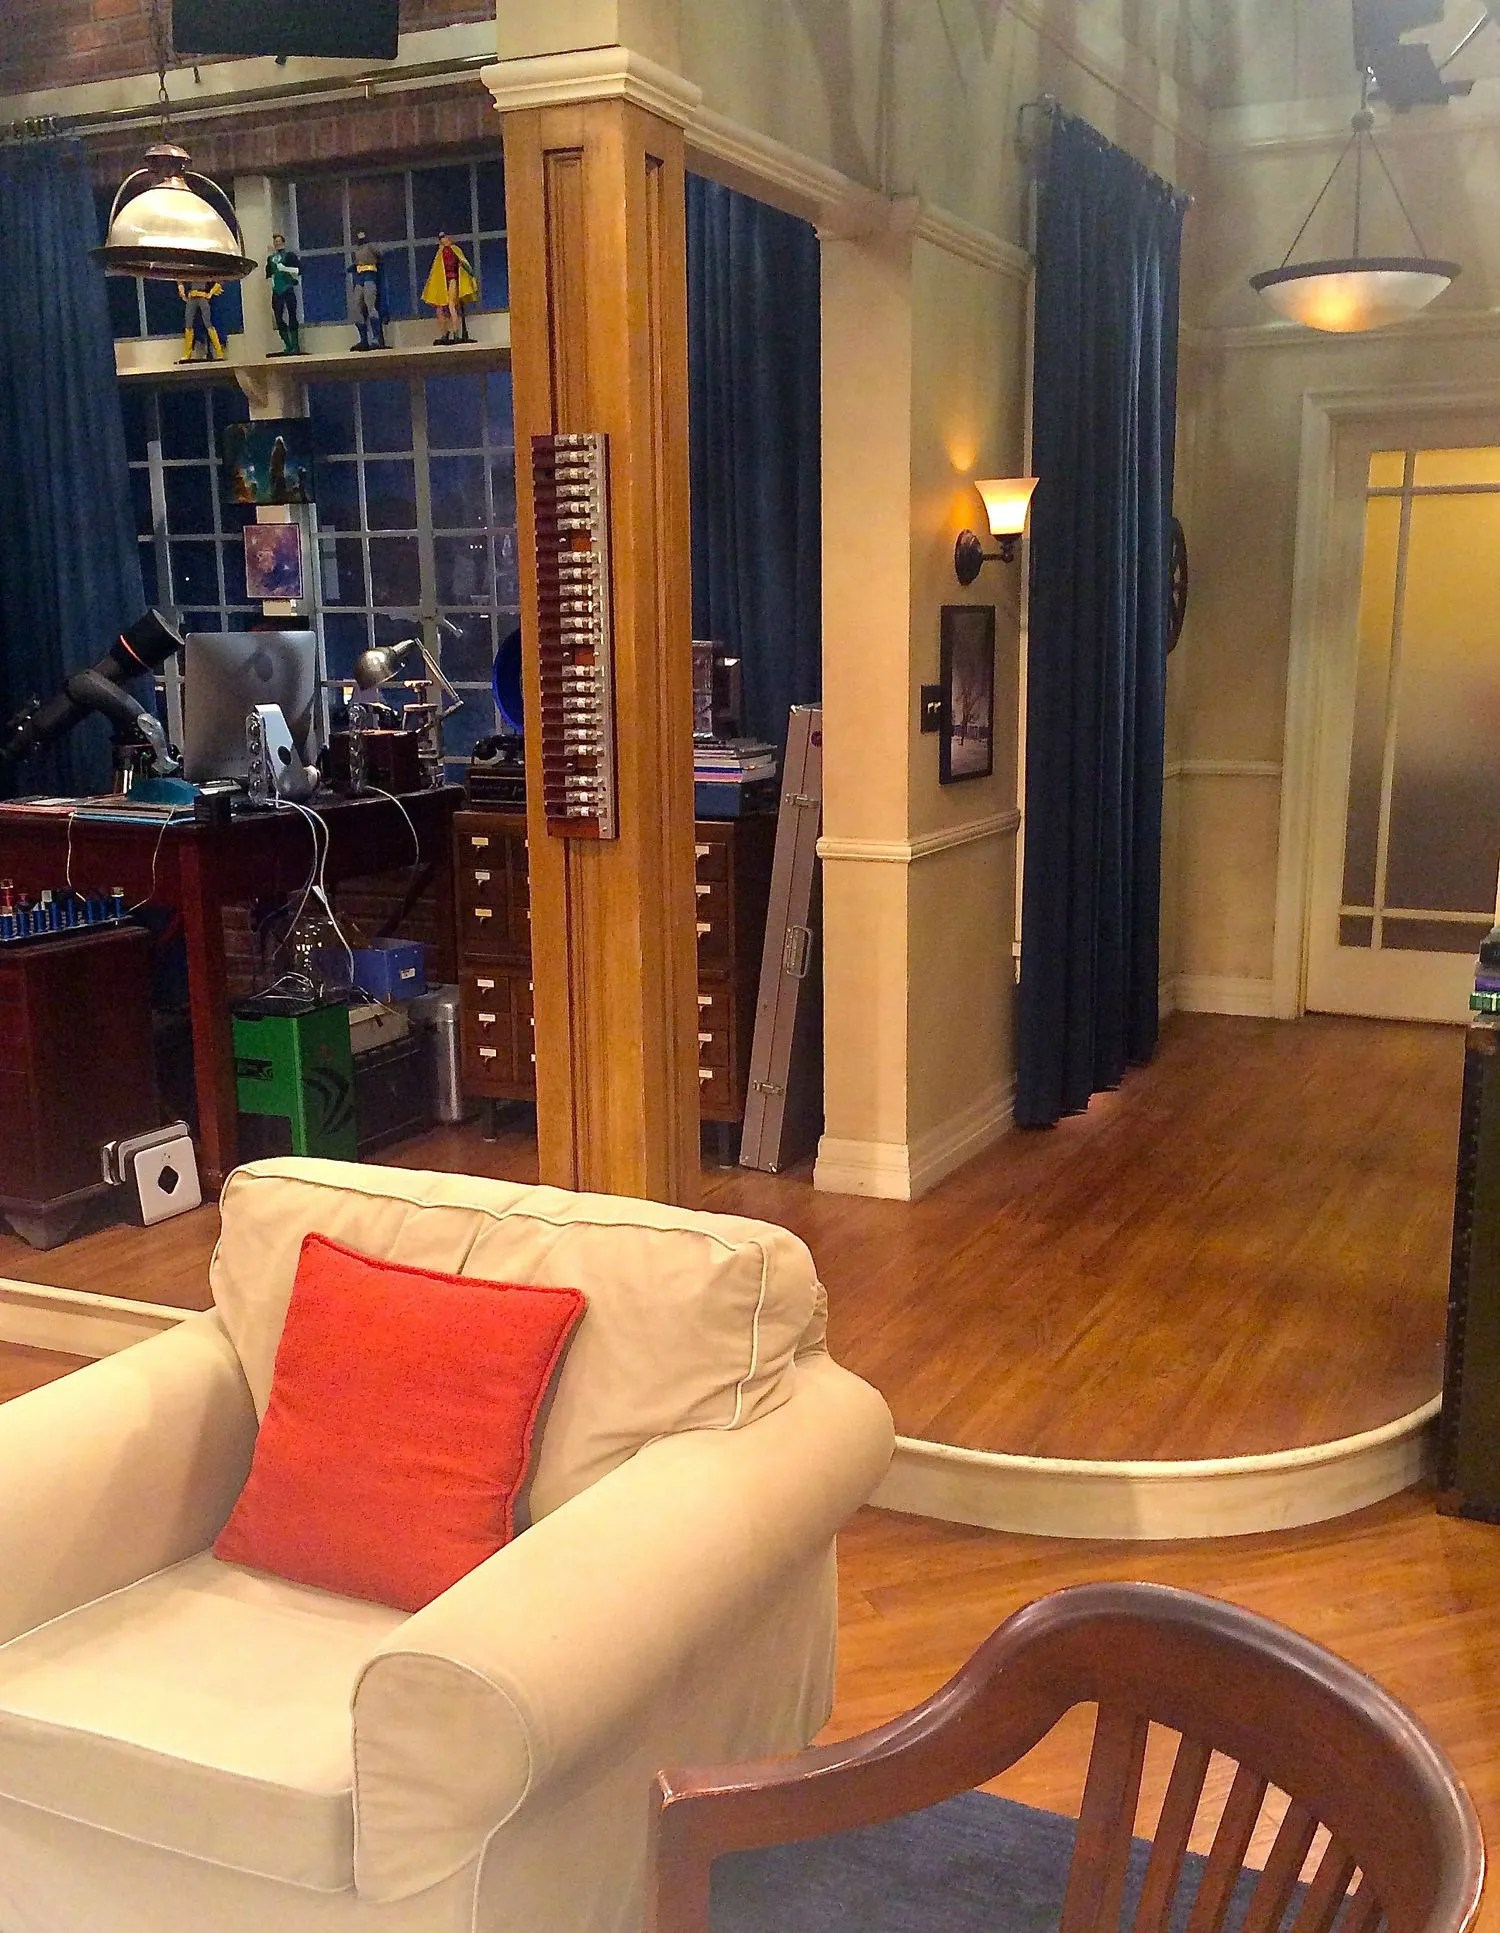 Big Bang Couch Gag The Big Bang Theory Behind The Scenes Set Photos And Videos Glamour